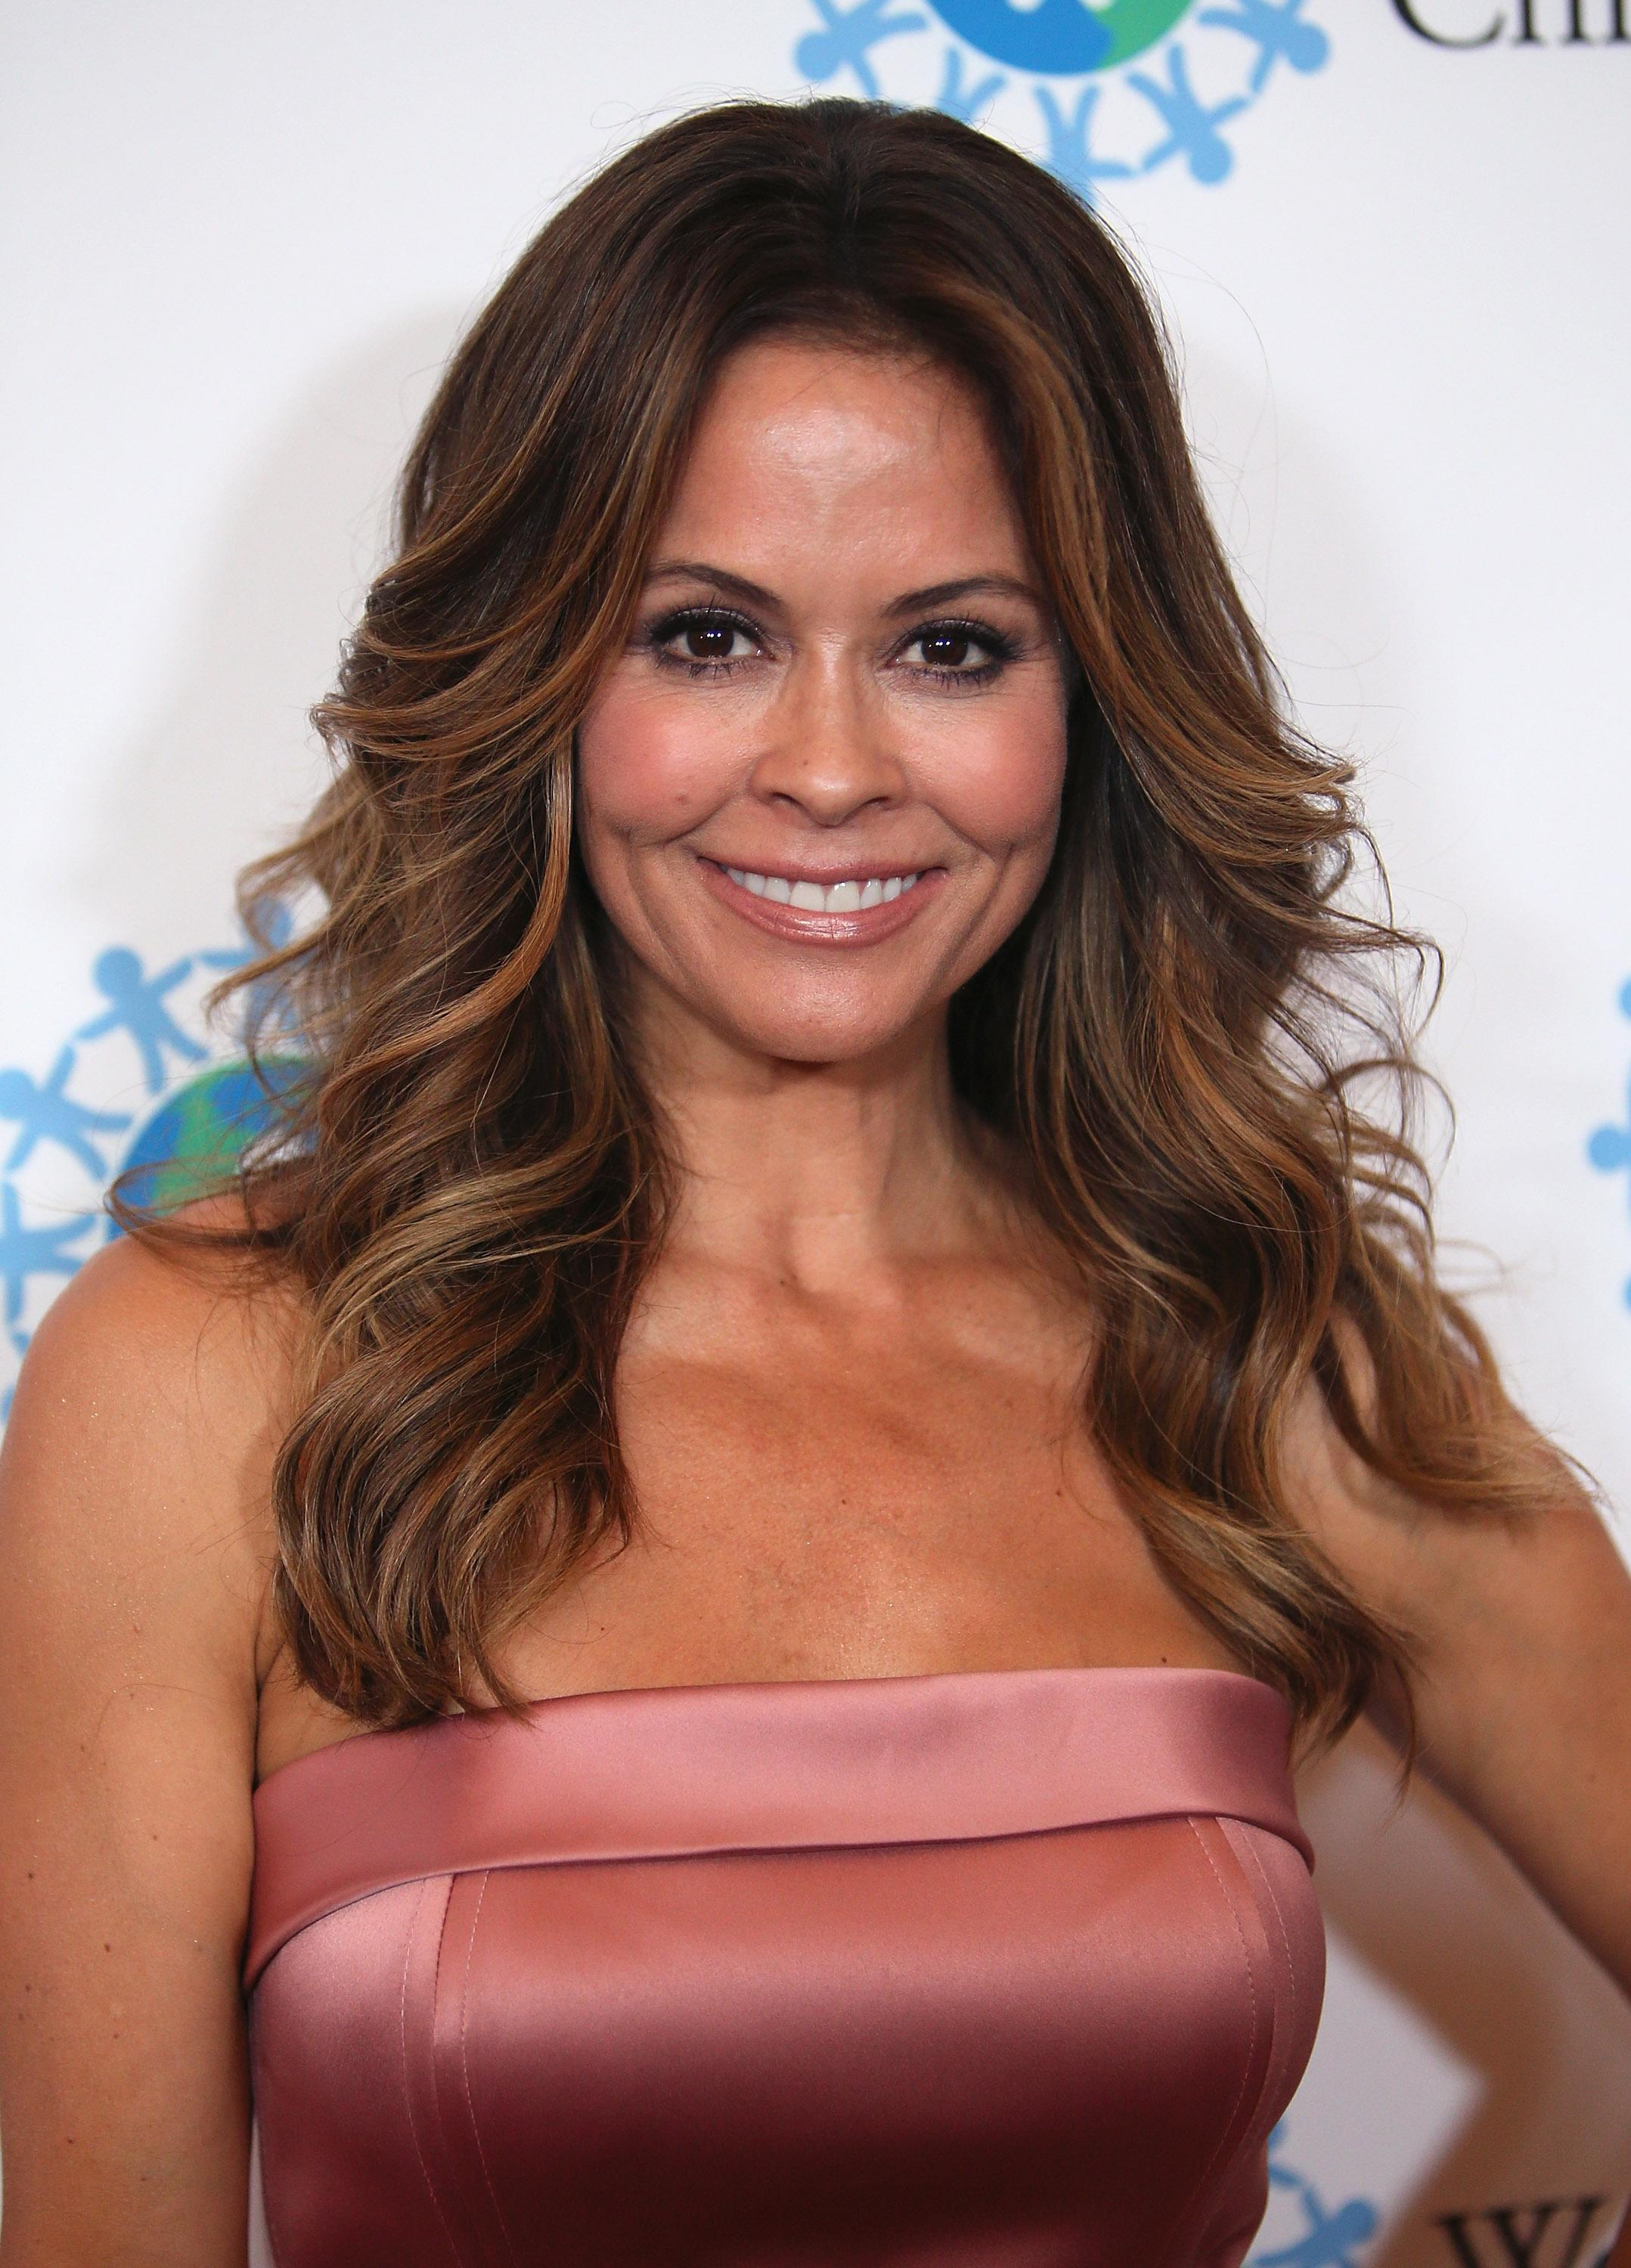 Brooke Burke-Charvet Nude Photos 13